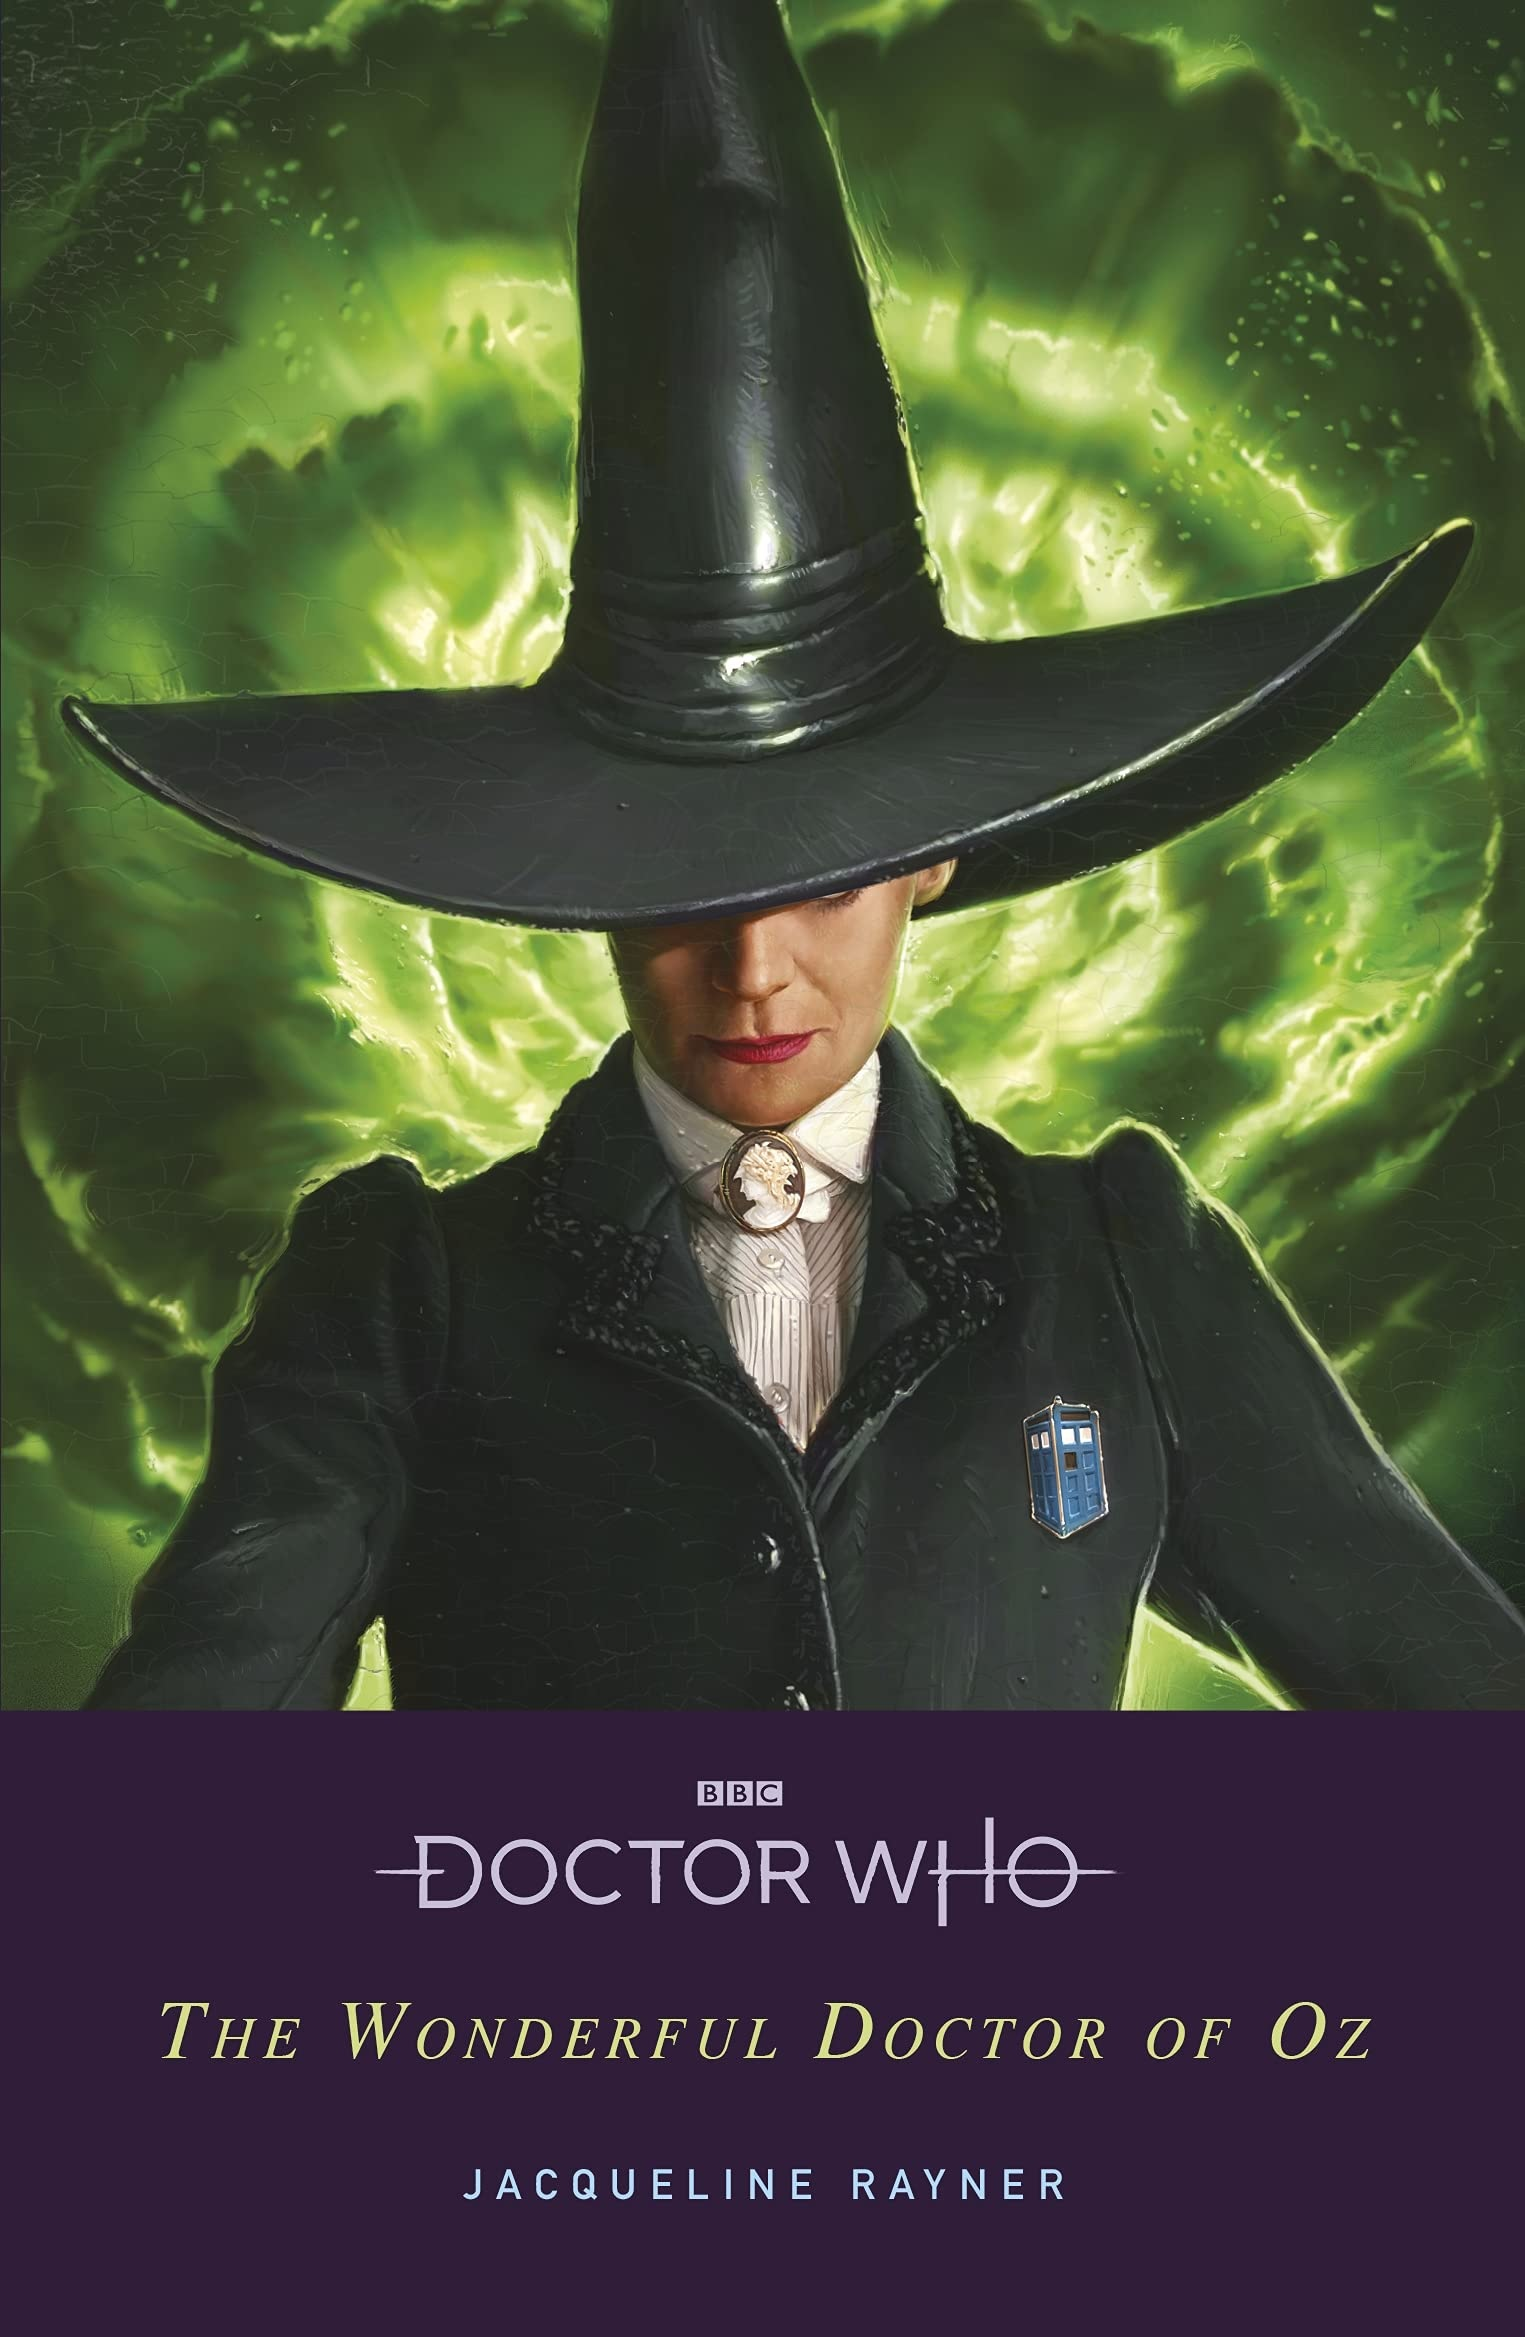 Missy Meets the Thirteenth Doctor in New Novel, The Wonderful Doctor of Oz